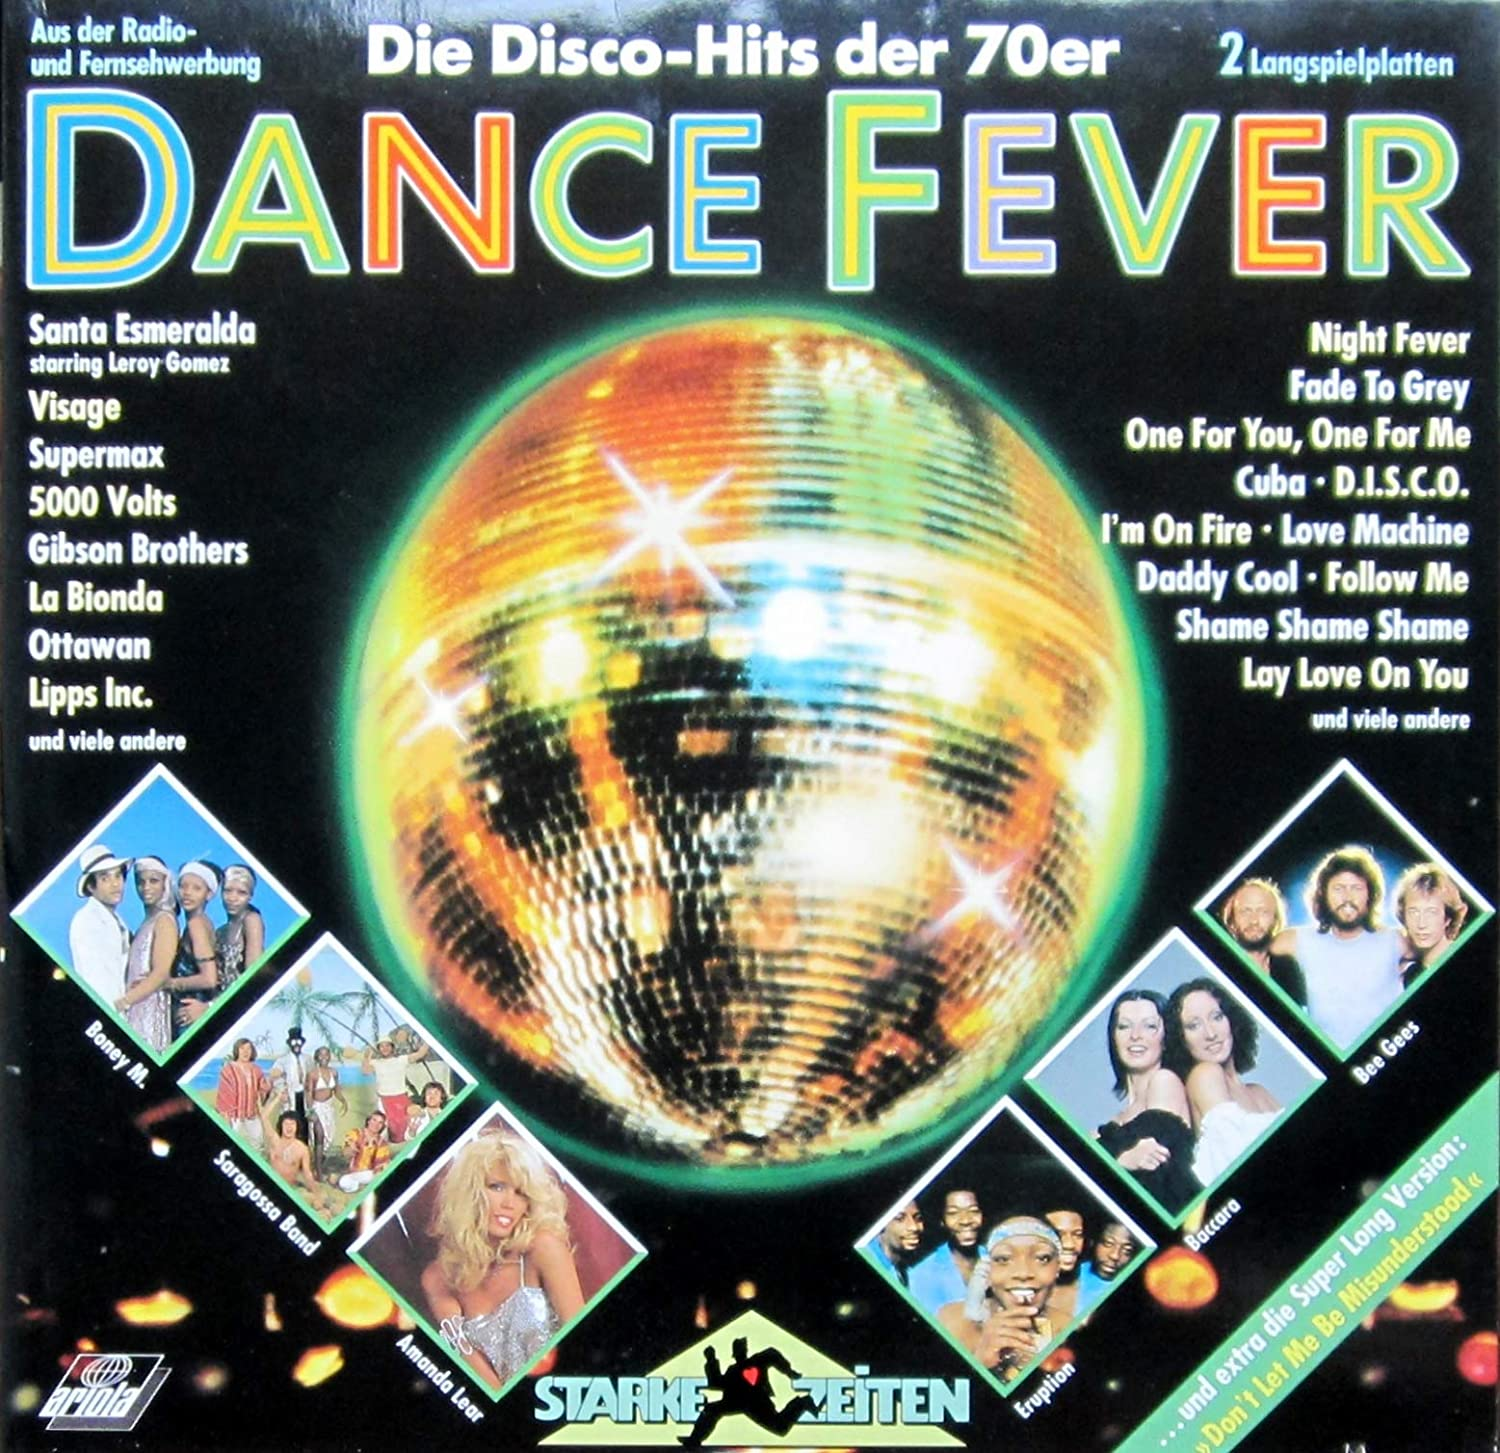 Various Dance Fever Die Disco Hits Der 70er Ariola 303 359 Amazon Com Music